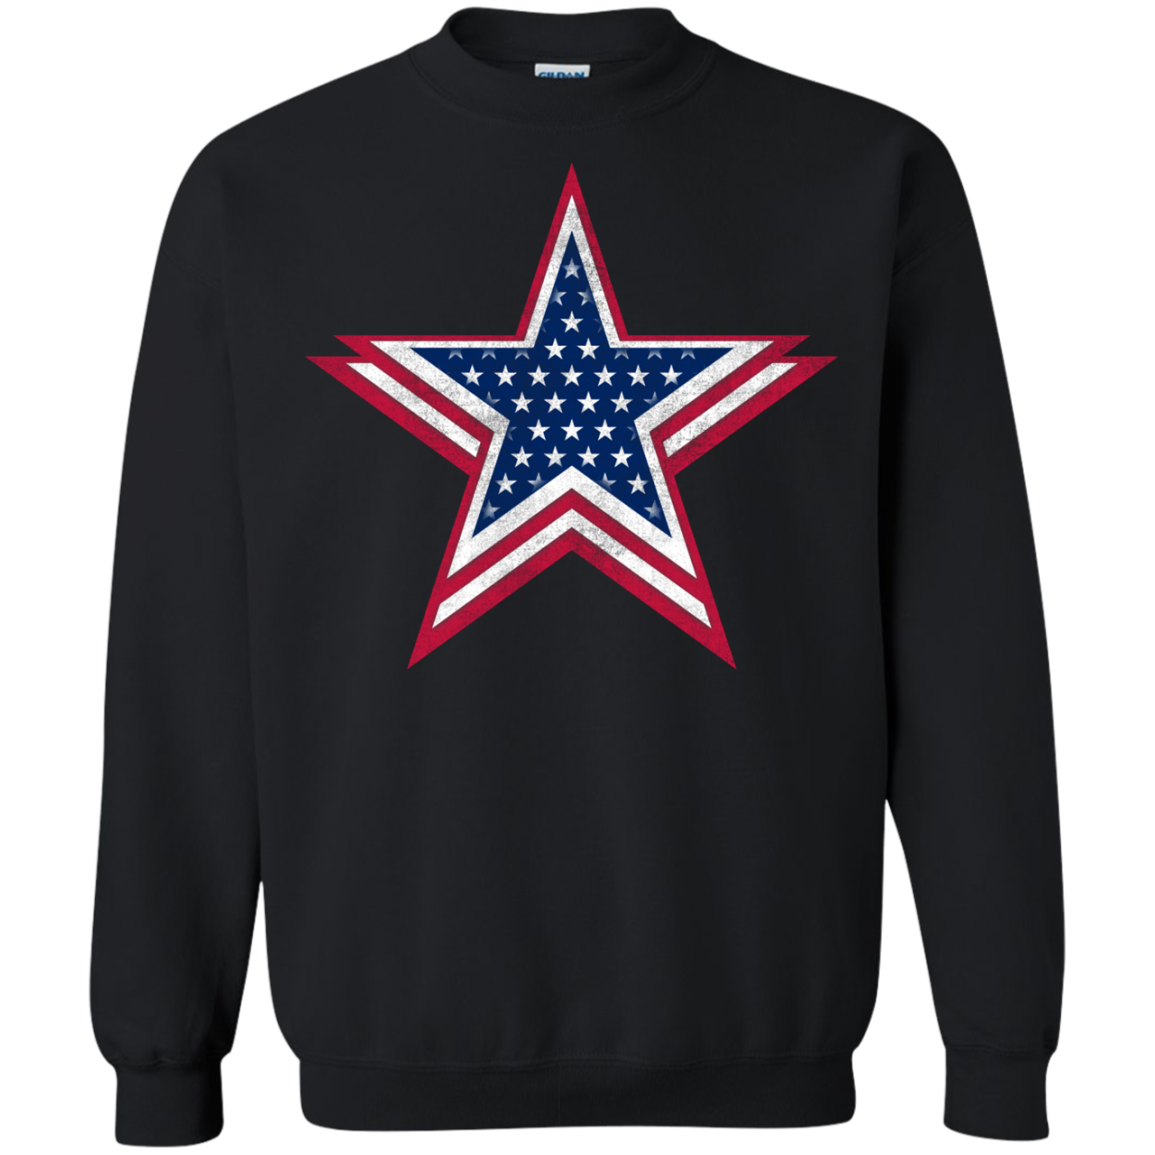 4th of July Big star 3 T-Shirt & Hoodie, Sweatshirt - The Sun Cat